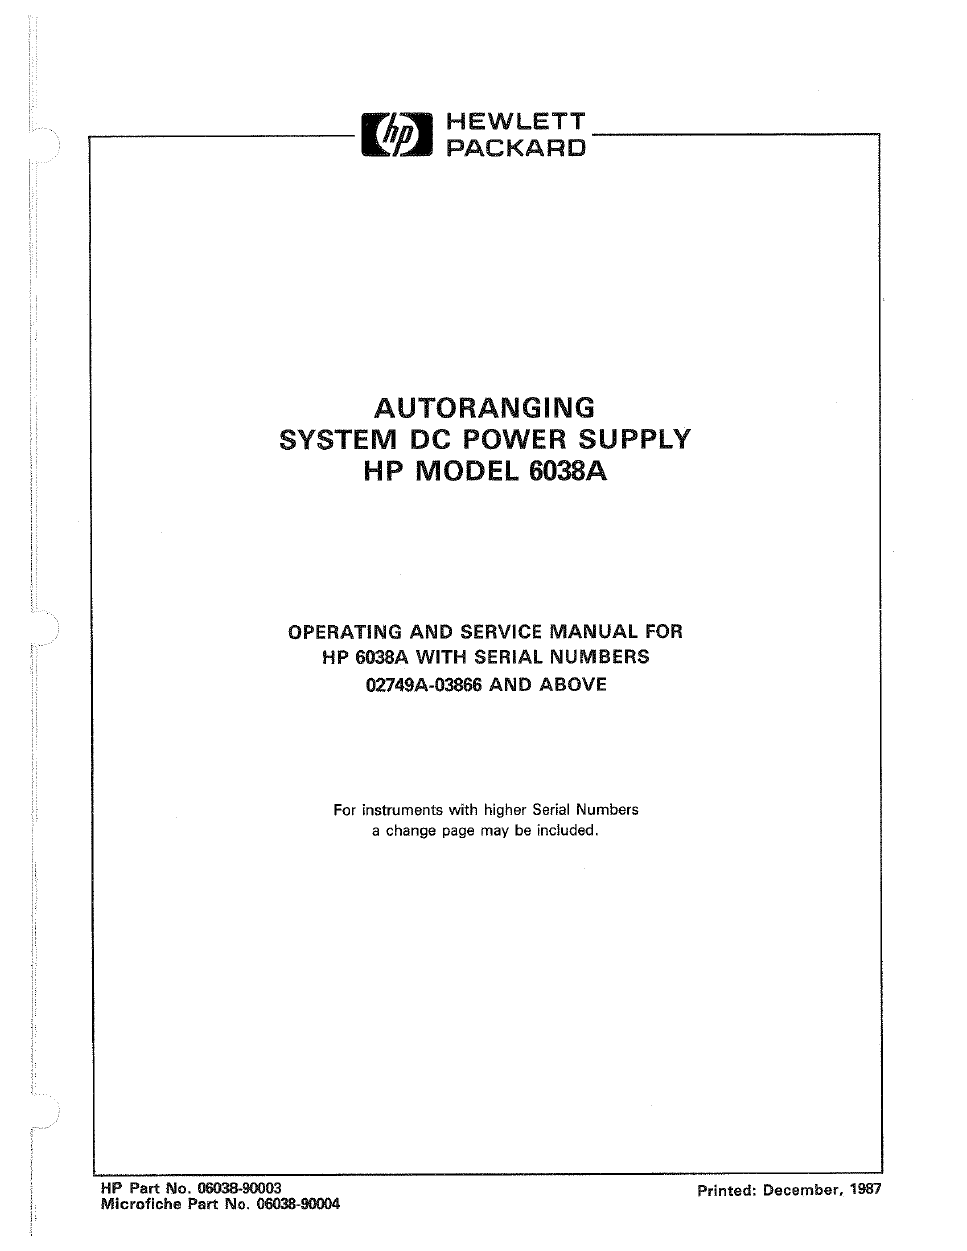 HP Power Supply 6038A User's Manual - Free PDF Download (44